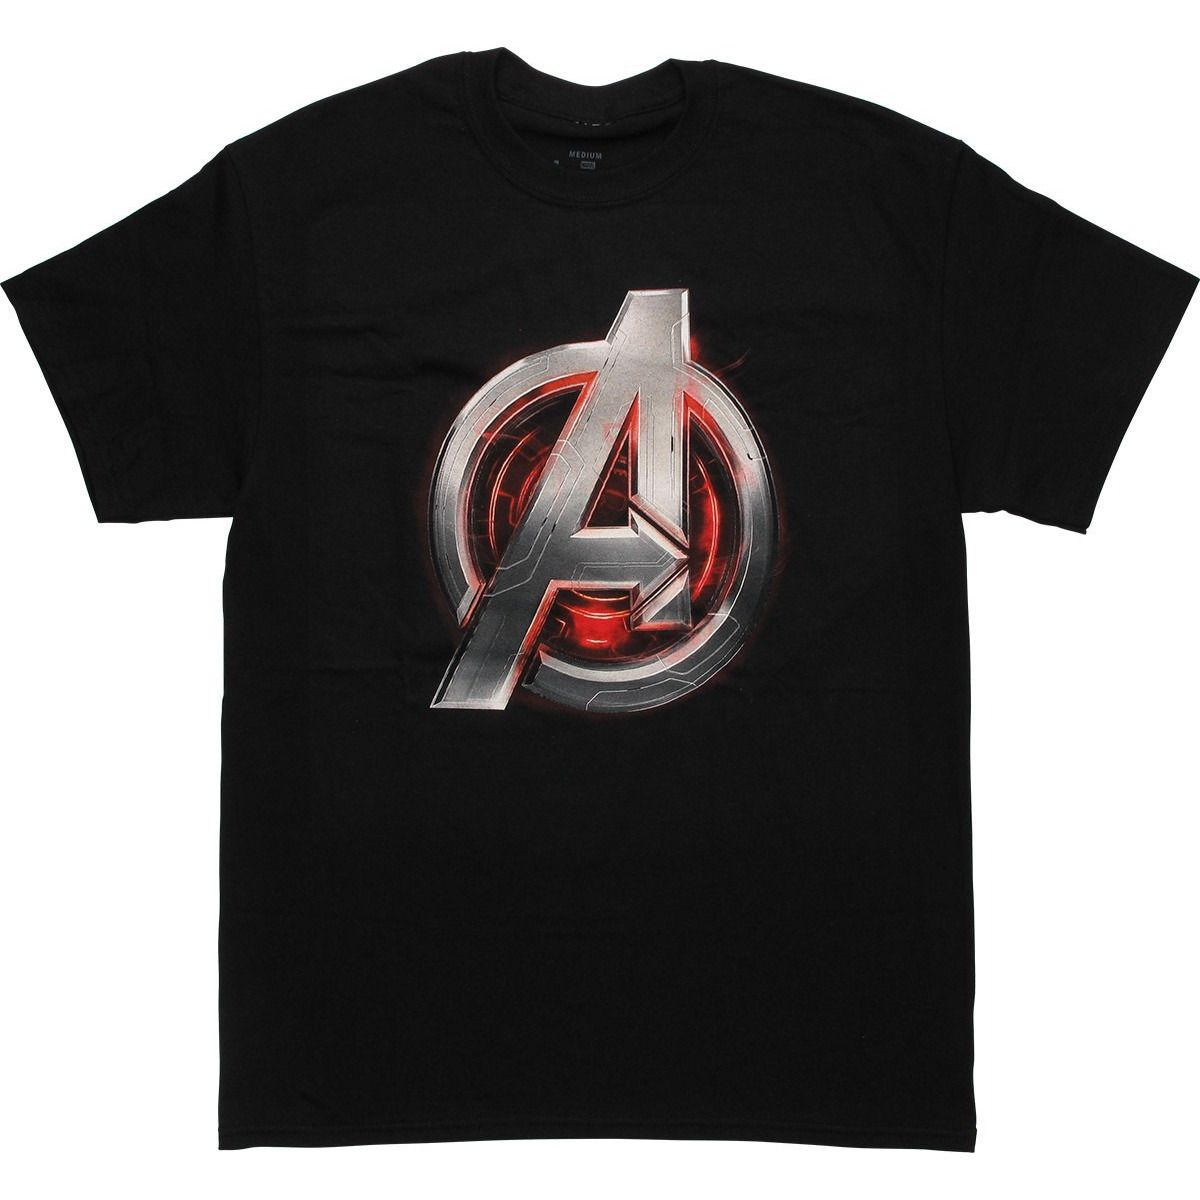 Avengers Age of Ultron Shirt Uncanny!